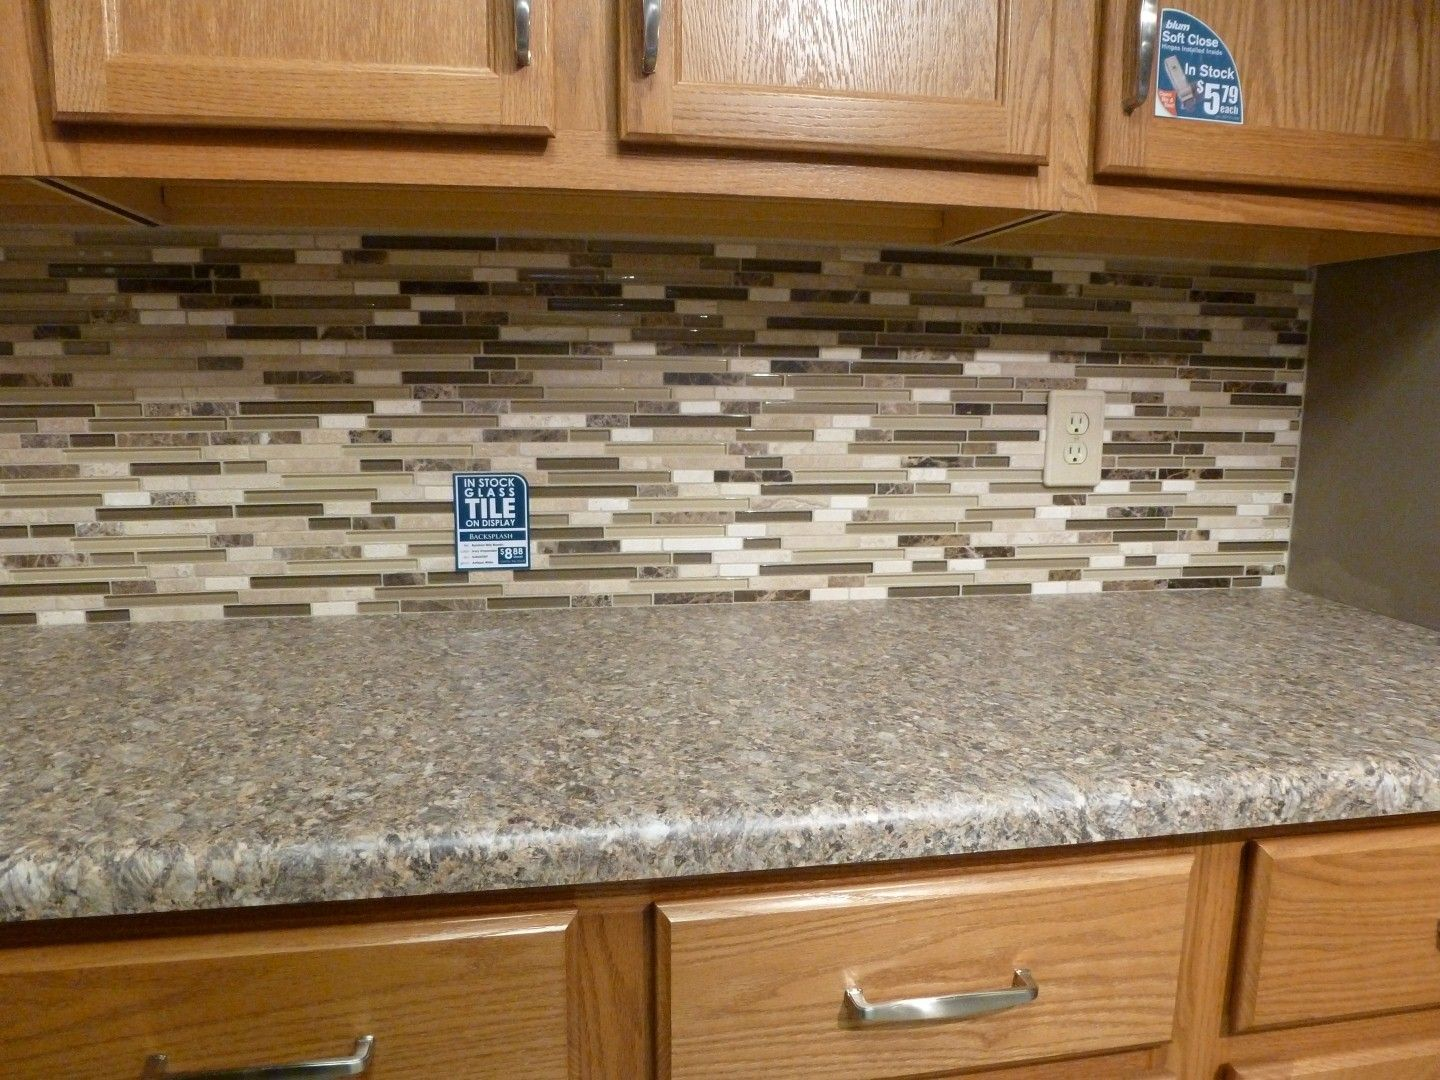 Mosaic Kitchen Tile Backsplash Ideas #2565 | BayTownKitchen & Mosaic Kitchen Tile Backsplash Ideas #2565 | BayTownKitchen | TILE ...